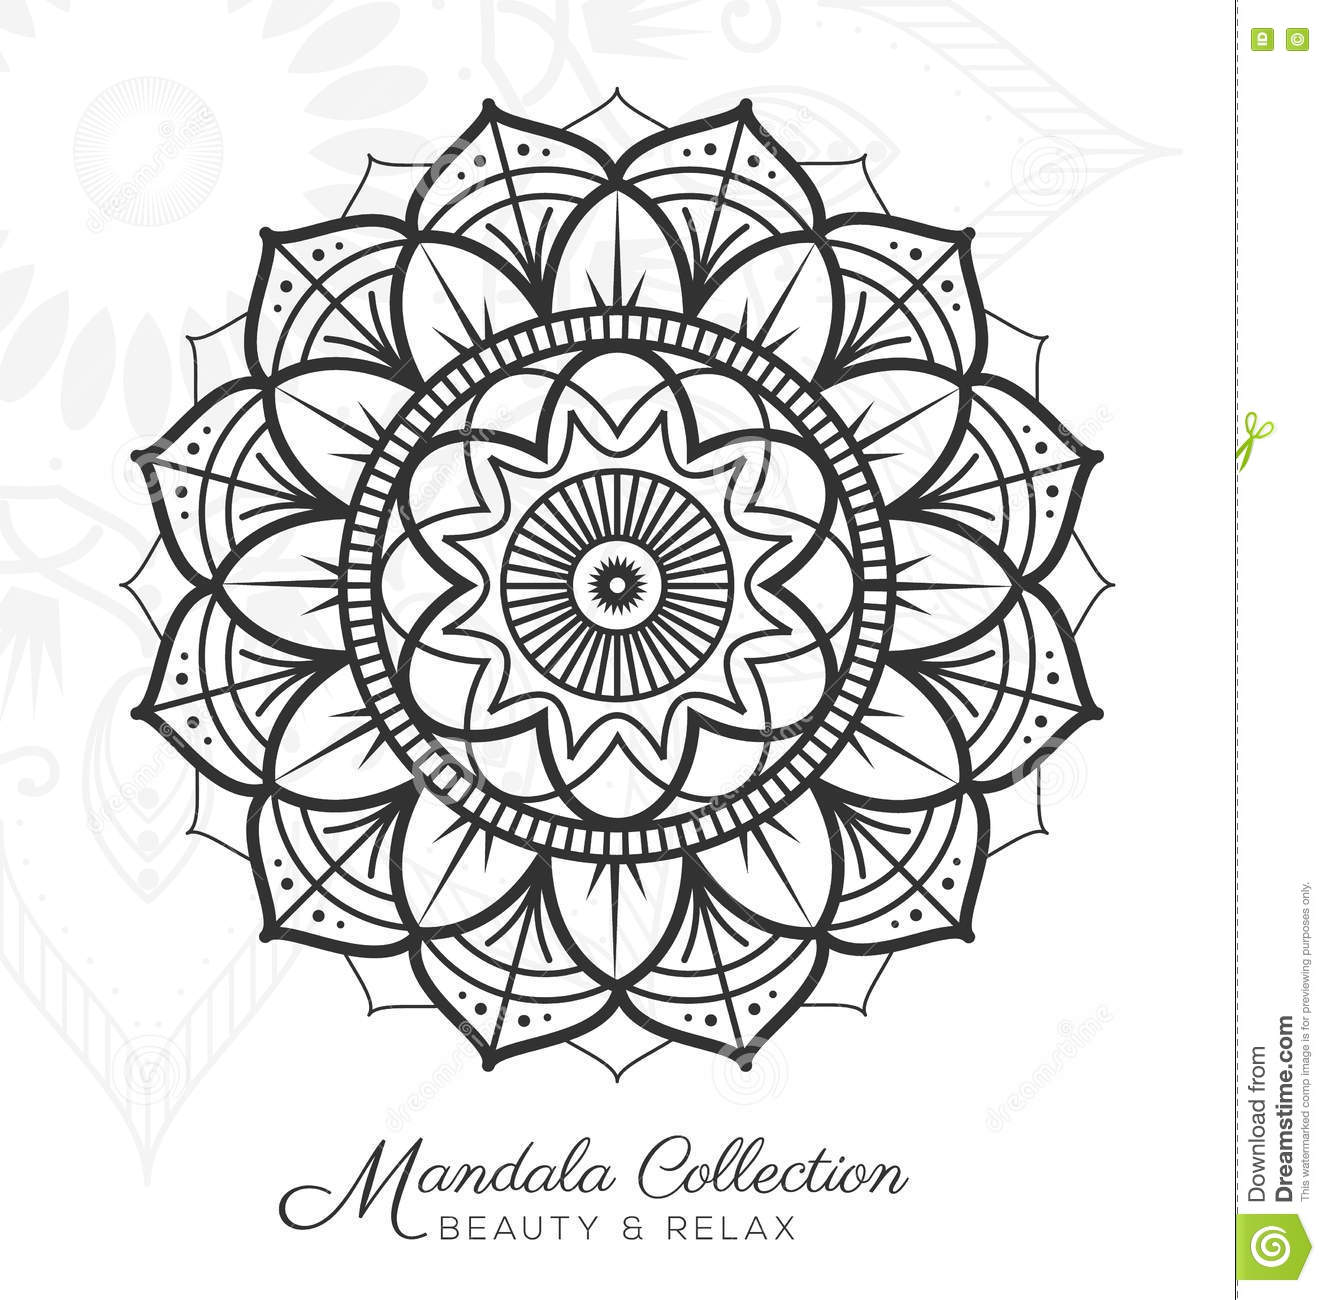 Royalty Free Vector Download Tibetan Mandala Decorative Ornament Design